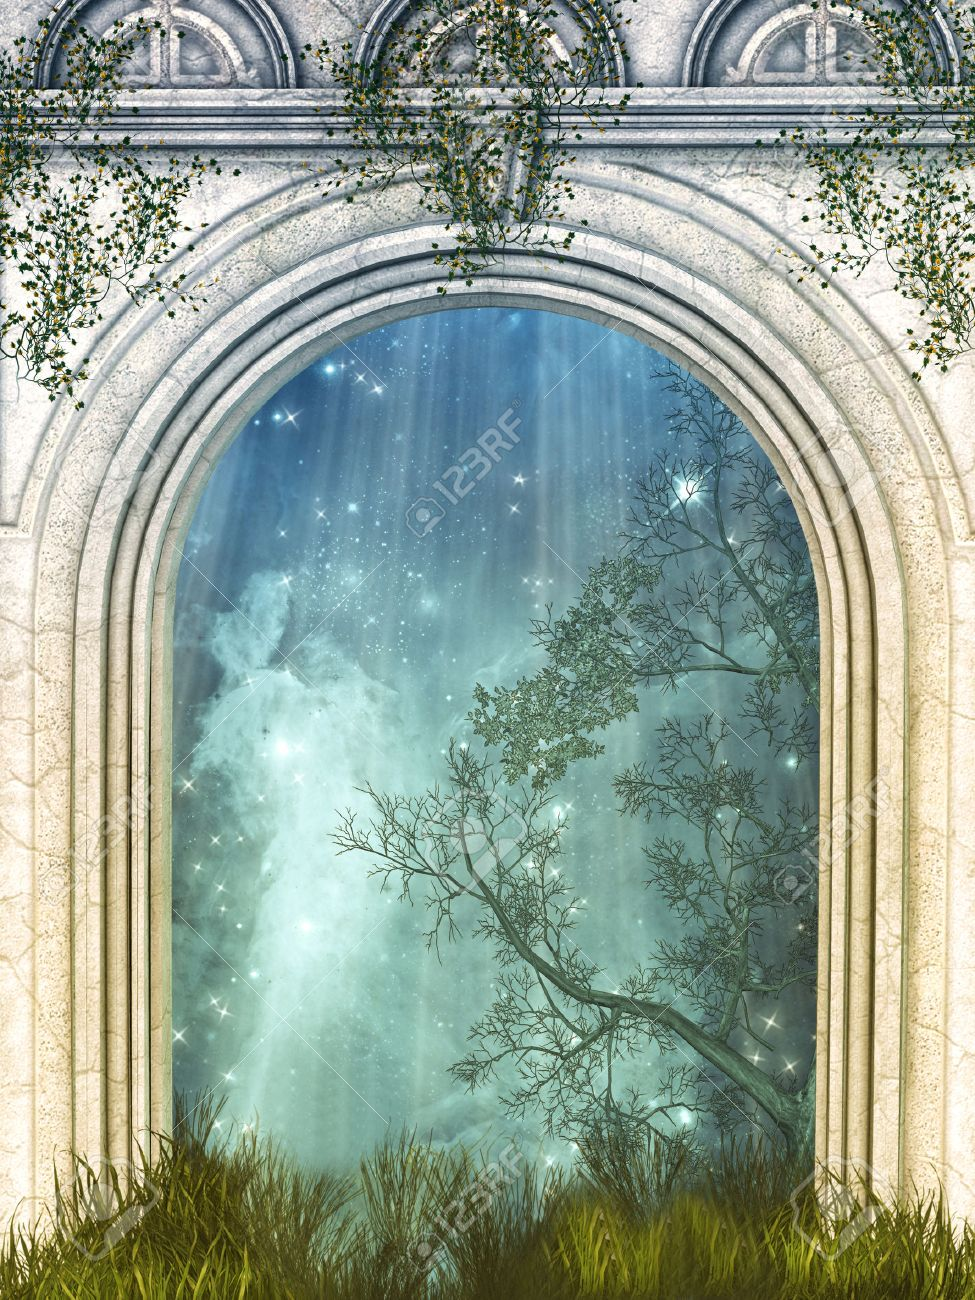 Magic door in the forest with stars Stock Photo - 48195404 & Magic Door In The Forest With Stars Stock Photo Picture And ... Pezcame.Com